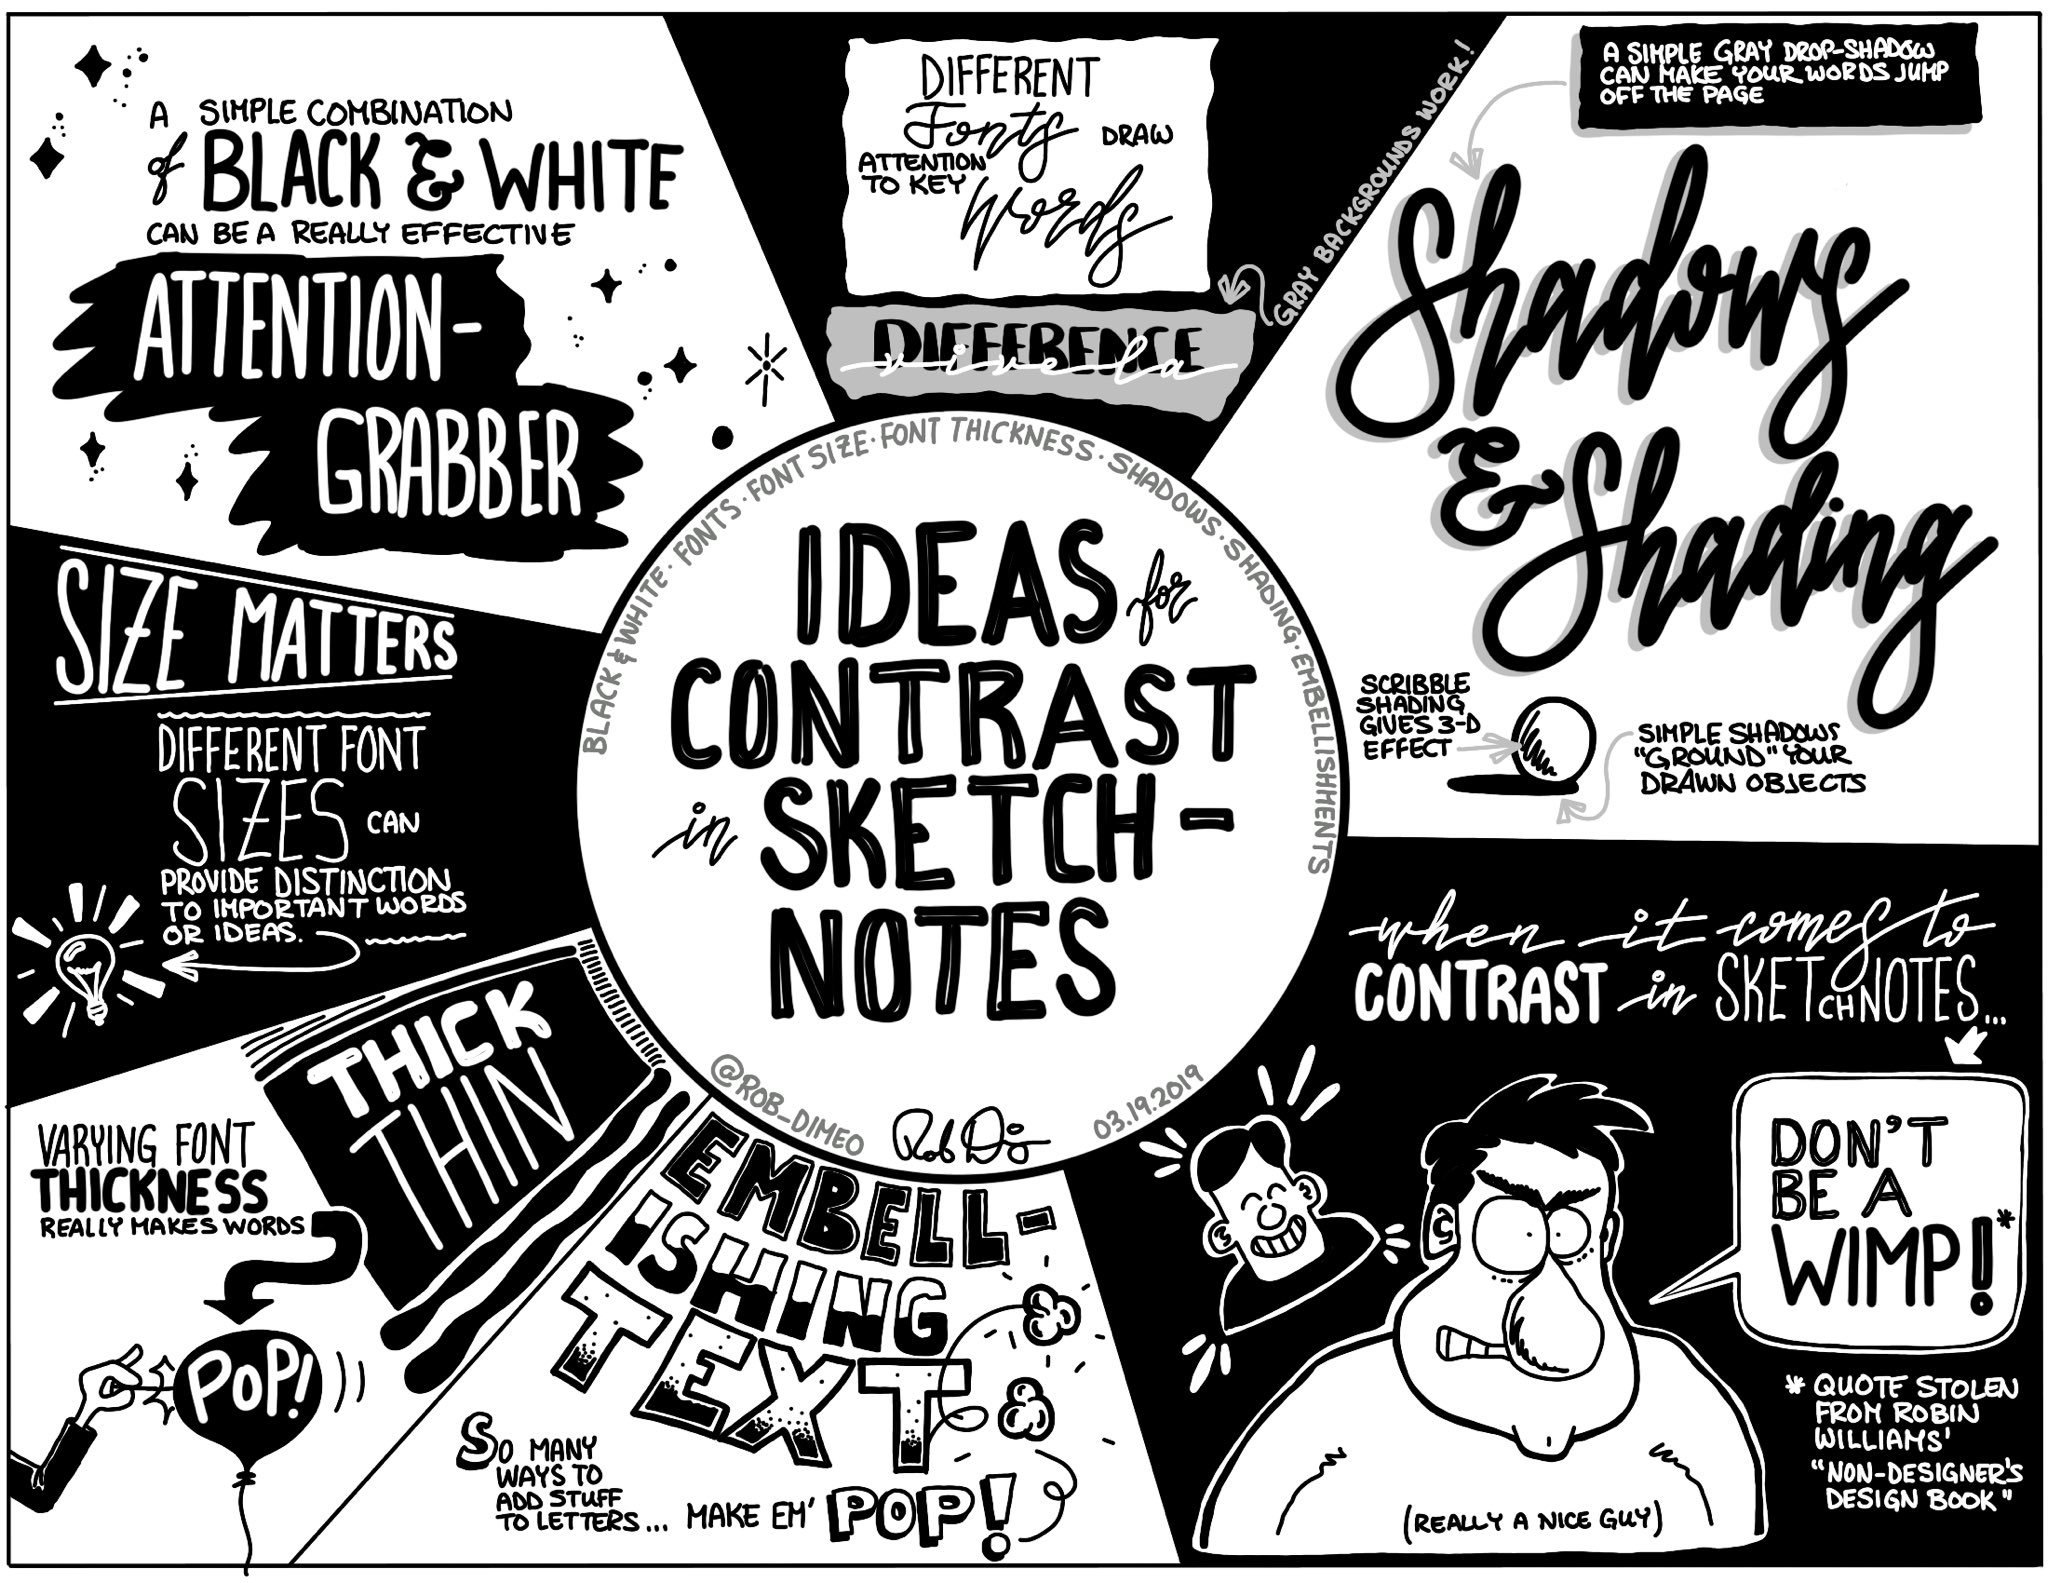 #Sketchnote summary of my recent reflections on the various ways to use contrast in sketchnotes to draw attention to ideas, key words and concepts. https://t.co/mQPXvjMNA5